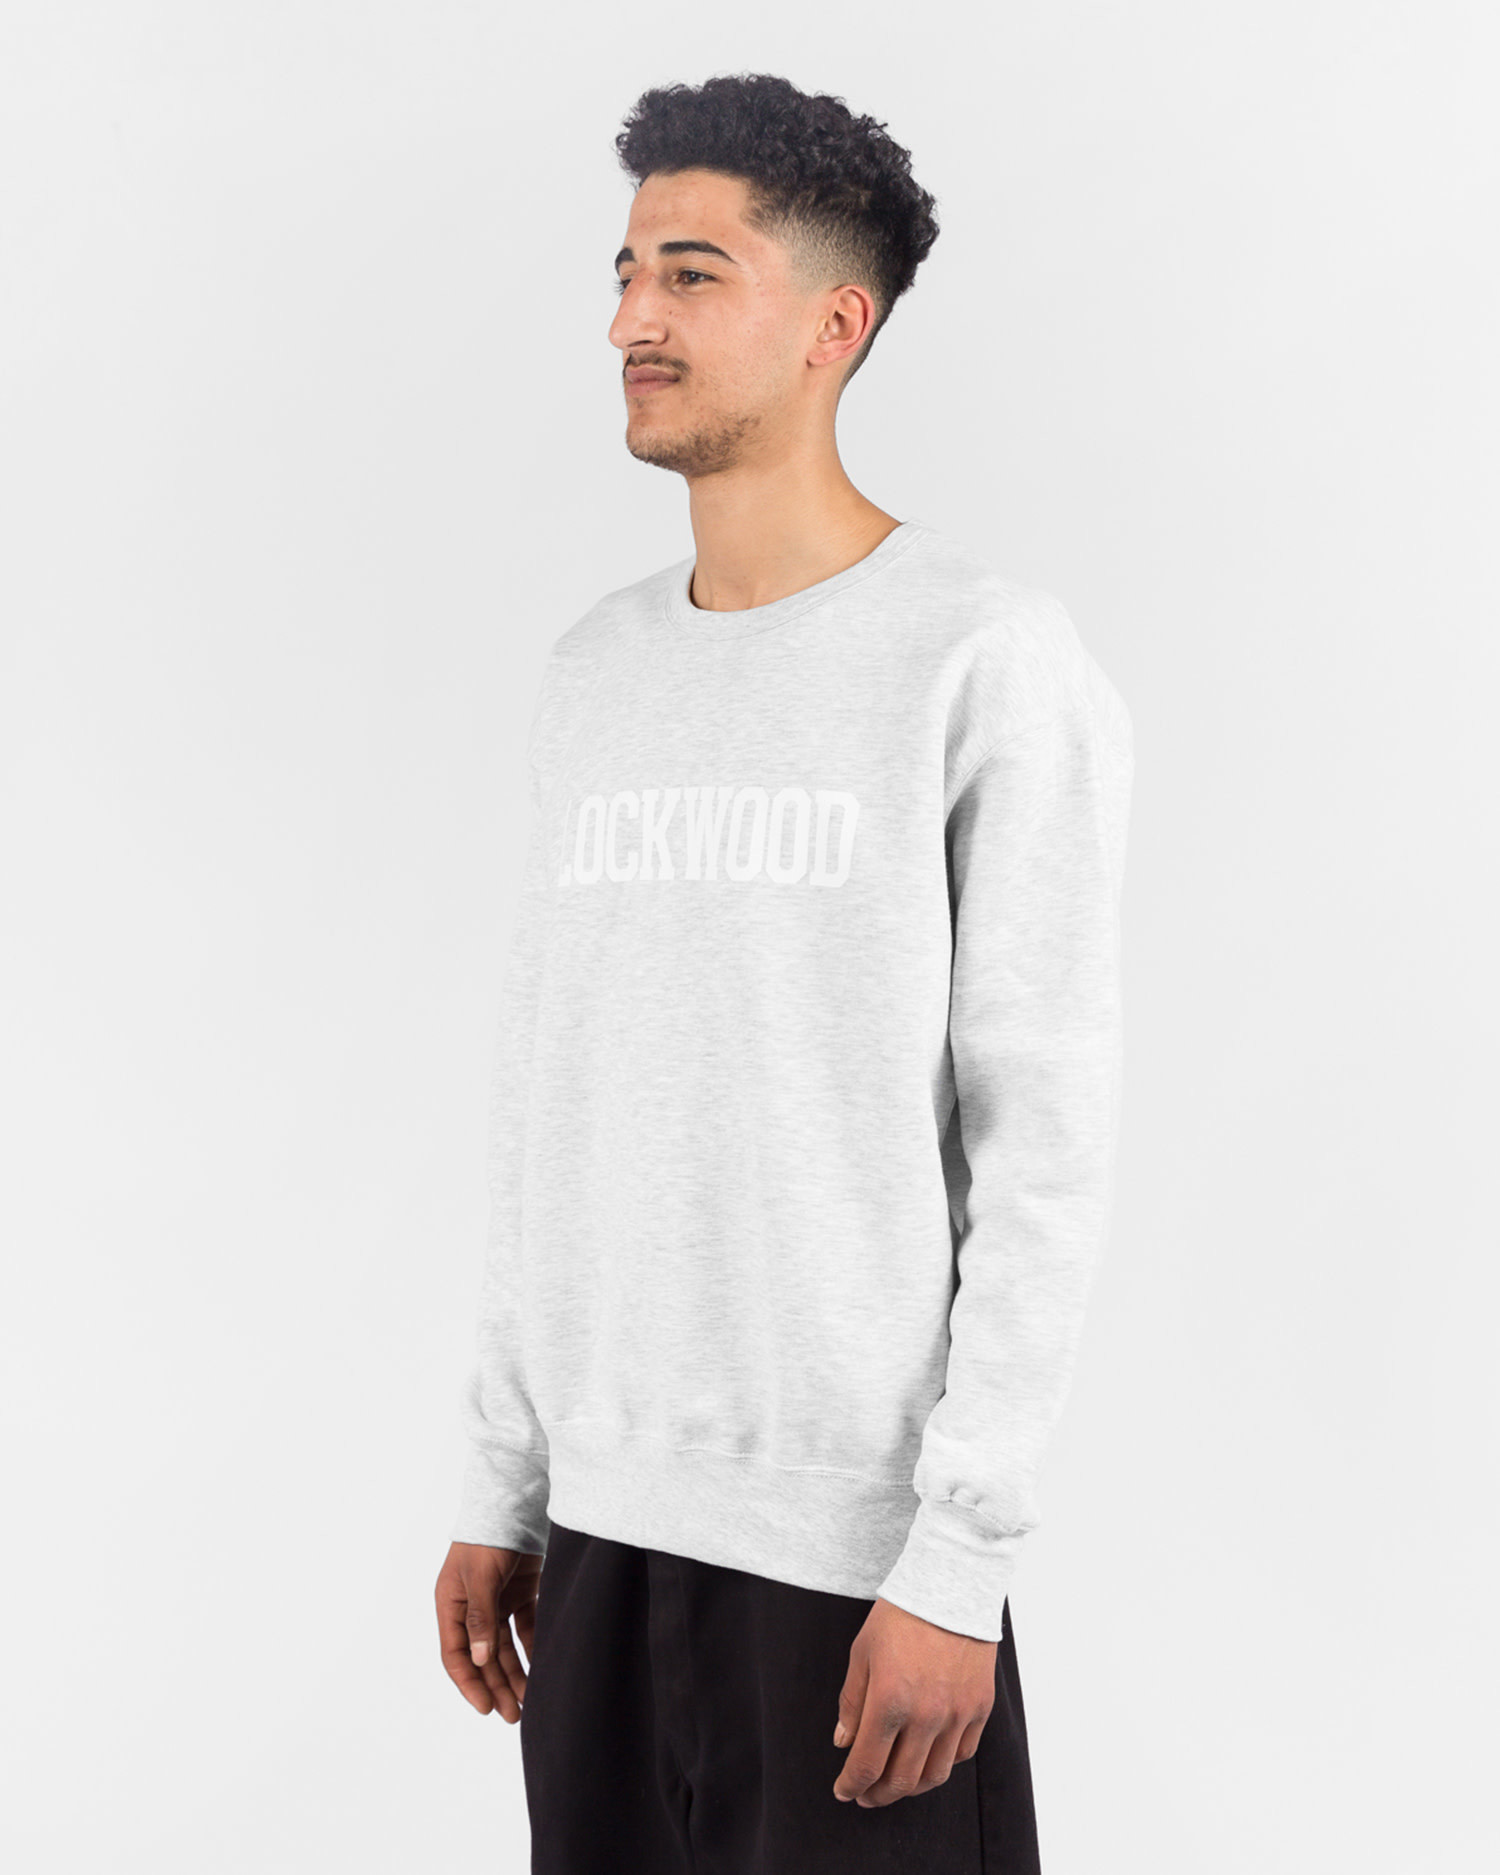 Lockwood OG Varsity Crewneck Grey/White